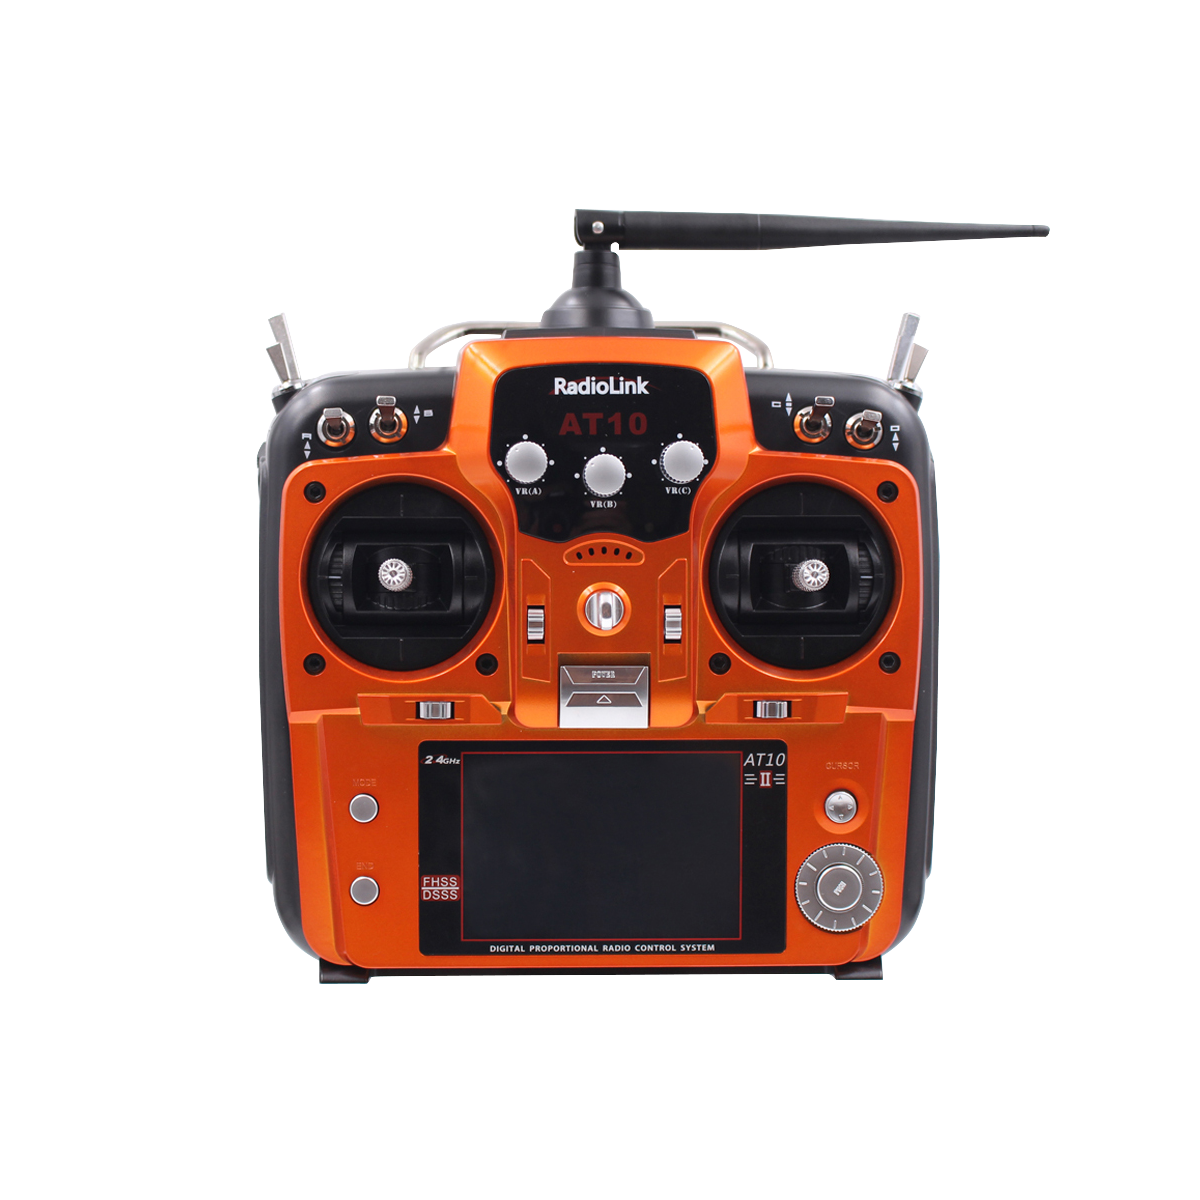 RadioLink-transmisor remoto AT10 II, 2,4 Ghz, 12 canales, con receptor R12DS, Dron Quadcopter RC